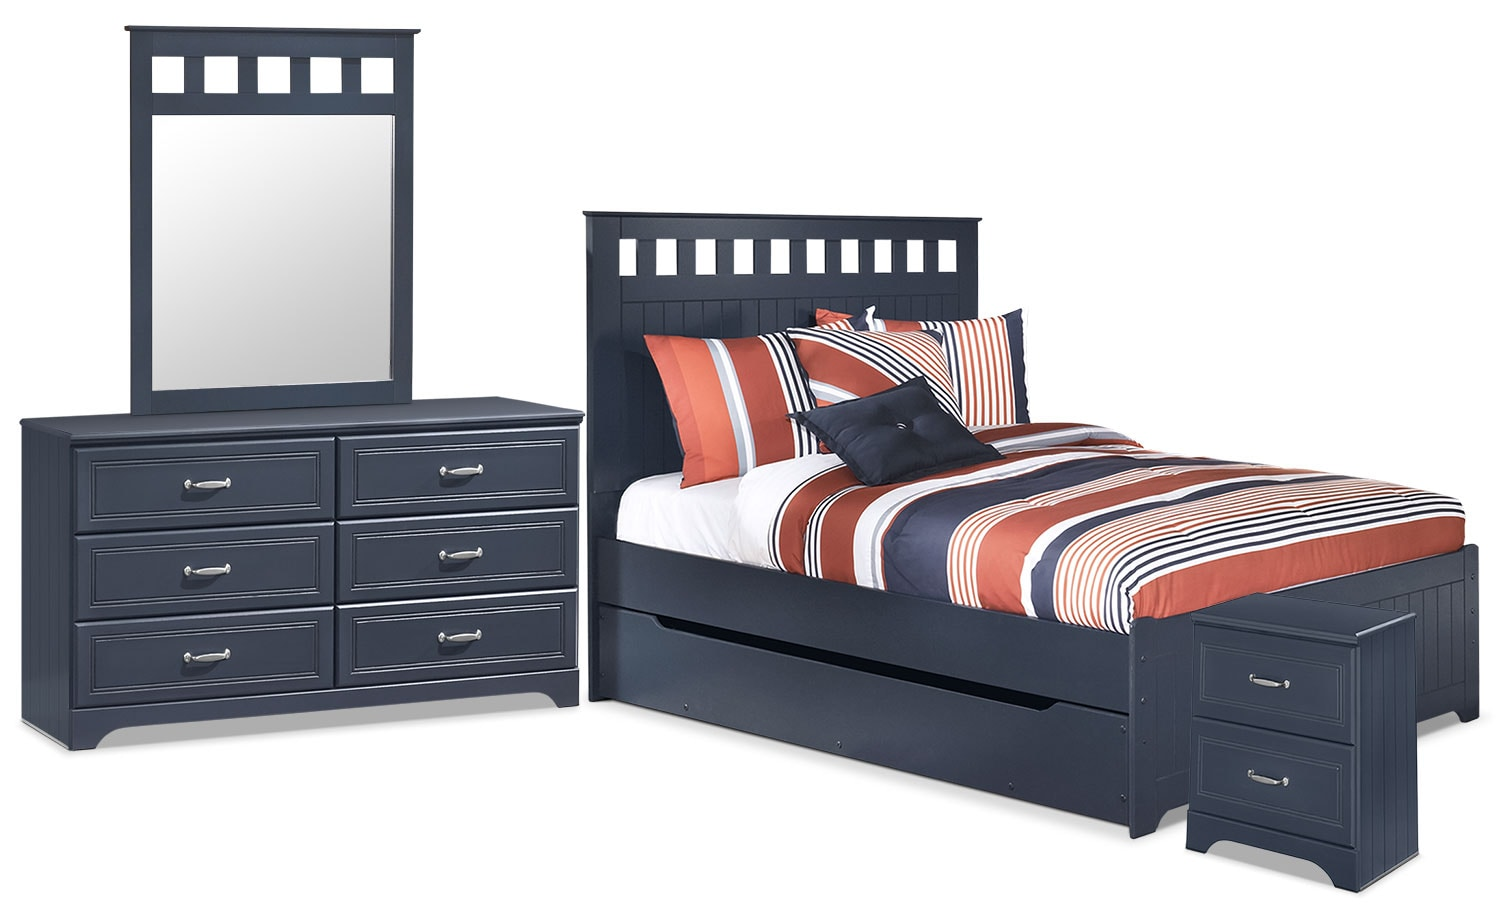 Leo 6-Piece Full Panel Bed Package with Trundle